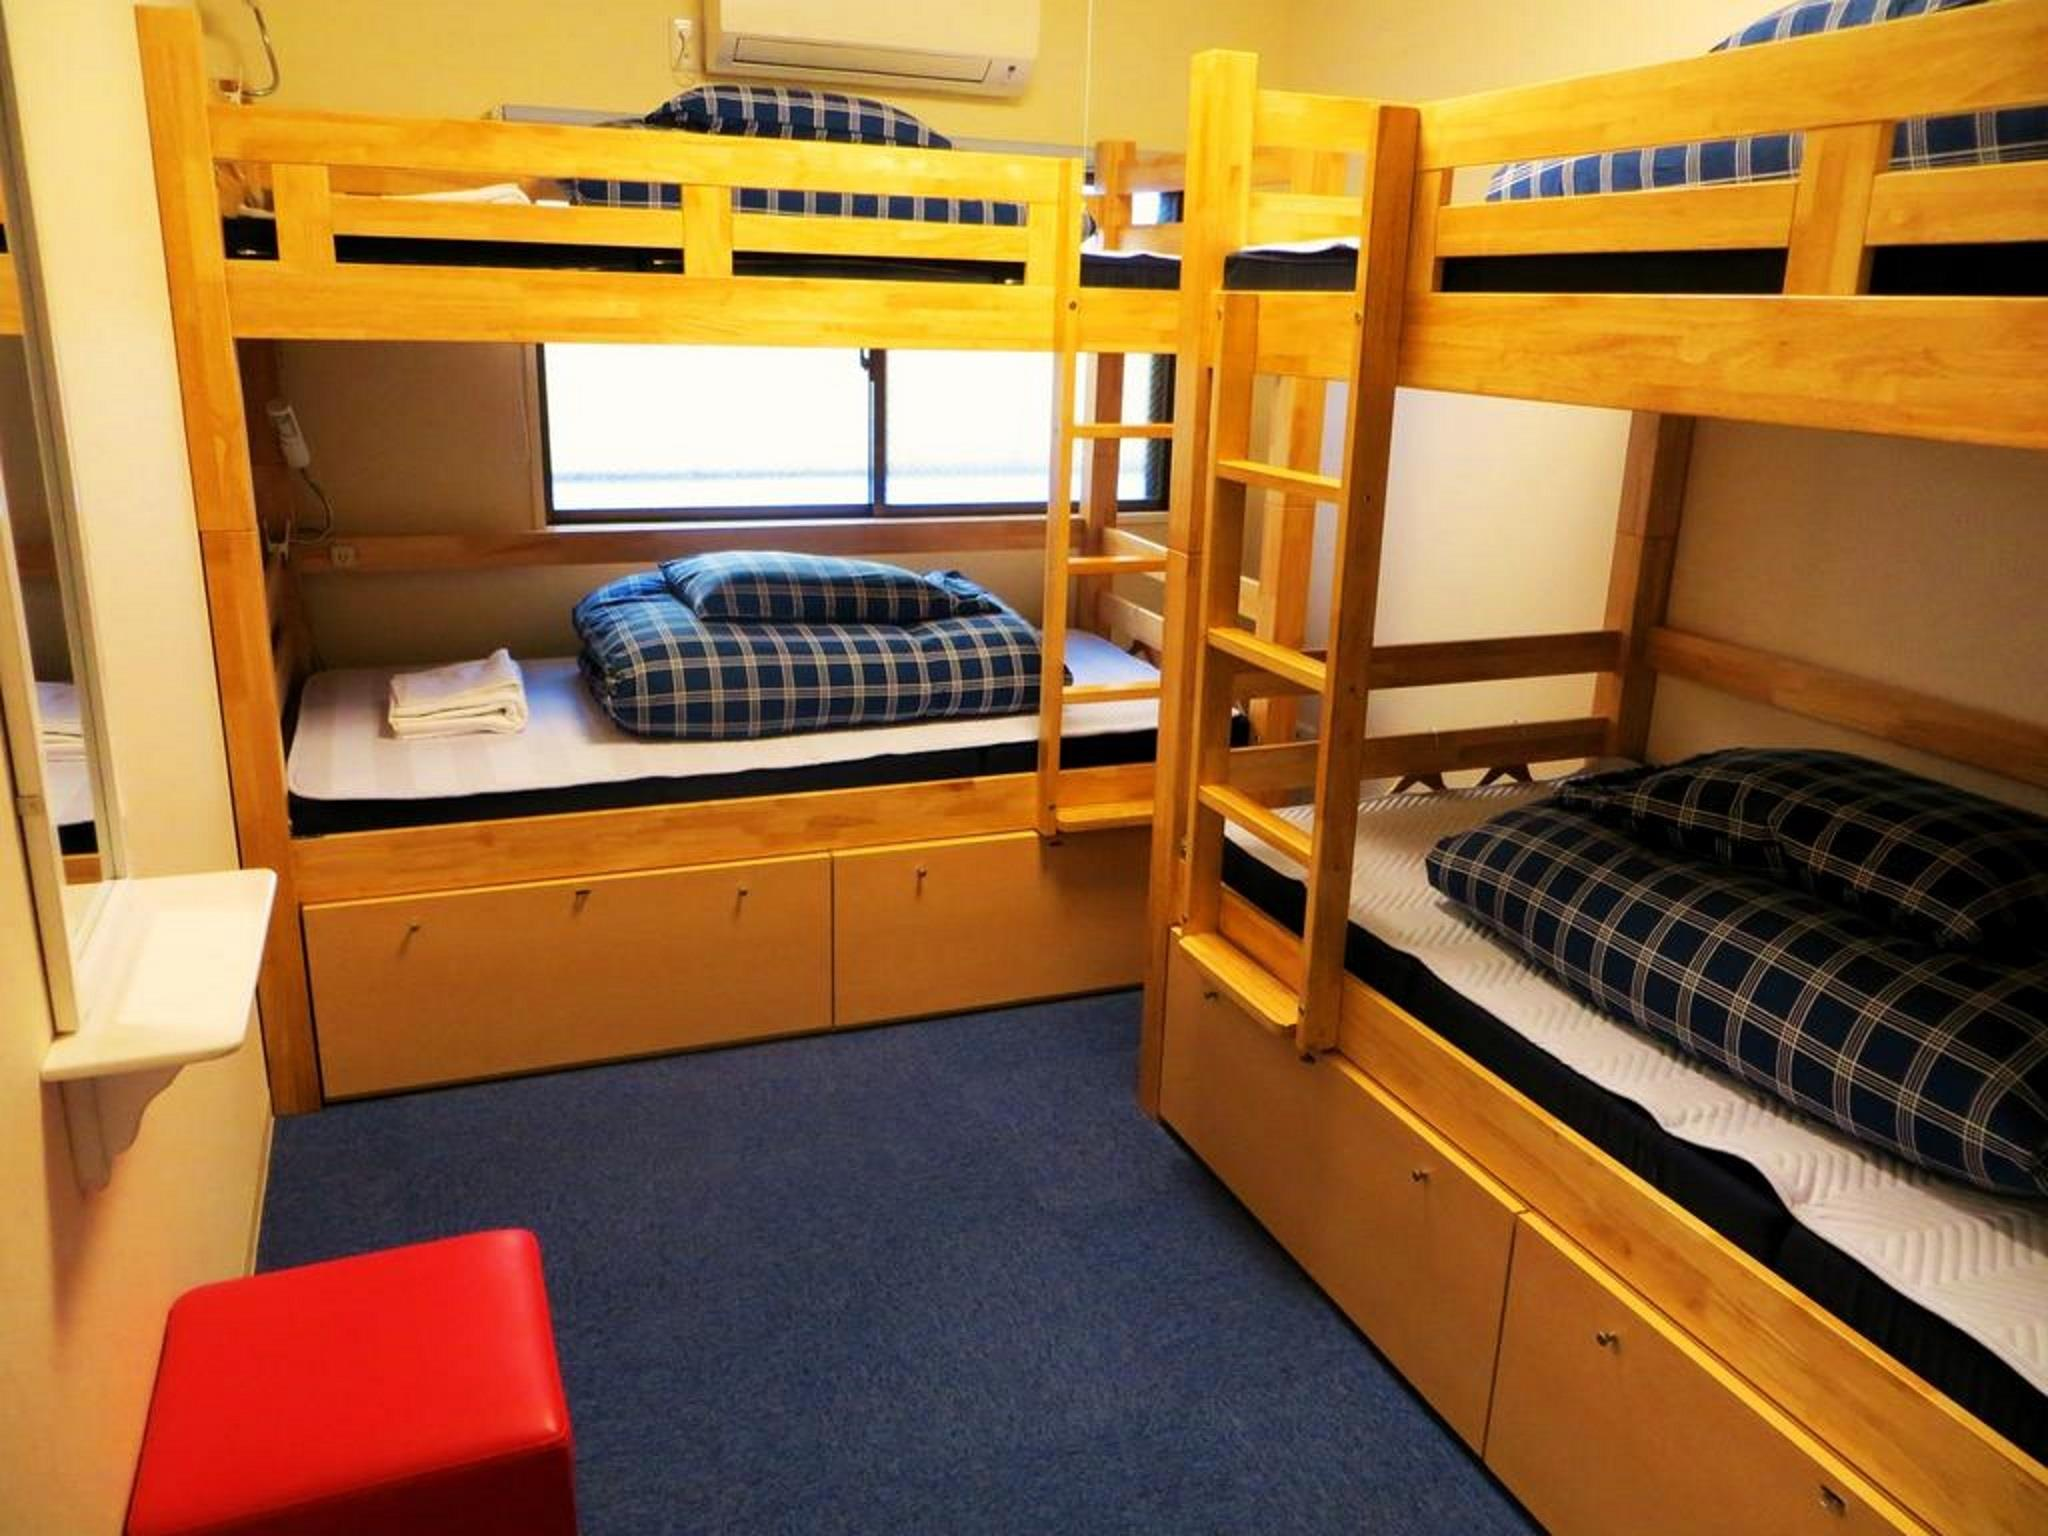 2 People in 6-Bed Dormitory - Mixed